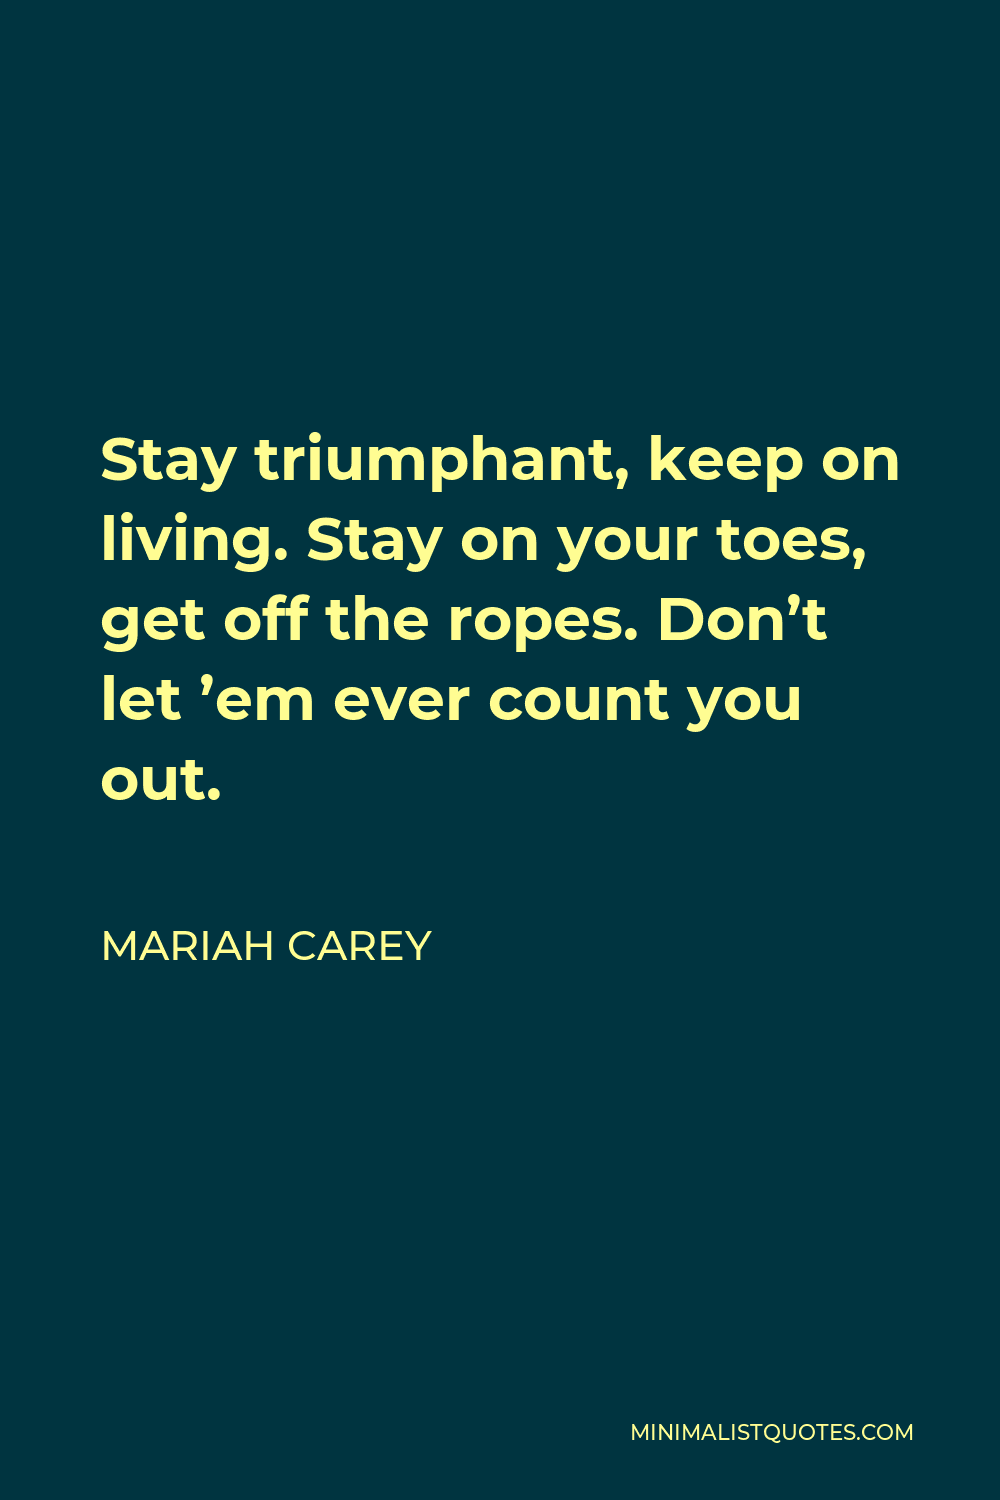 Mariah Carey Quote - Stay triumphant, keep on living. Stay on your toes, get off the ropes. Don't let 'em ever count you out.